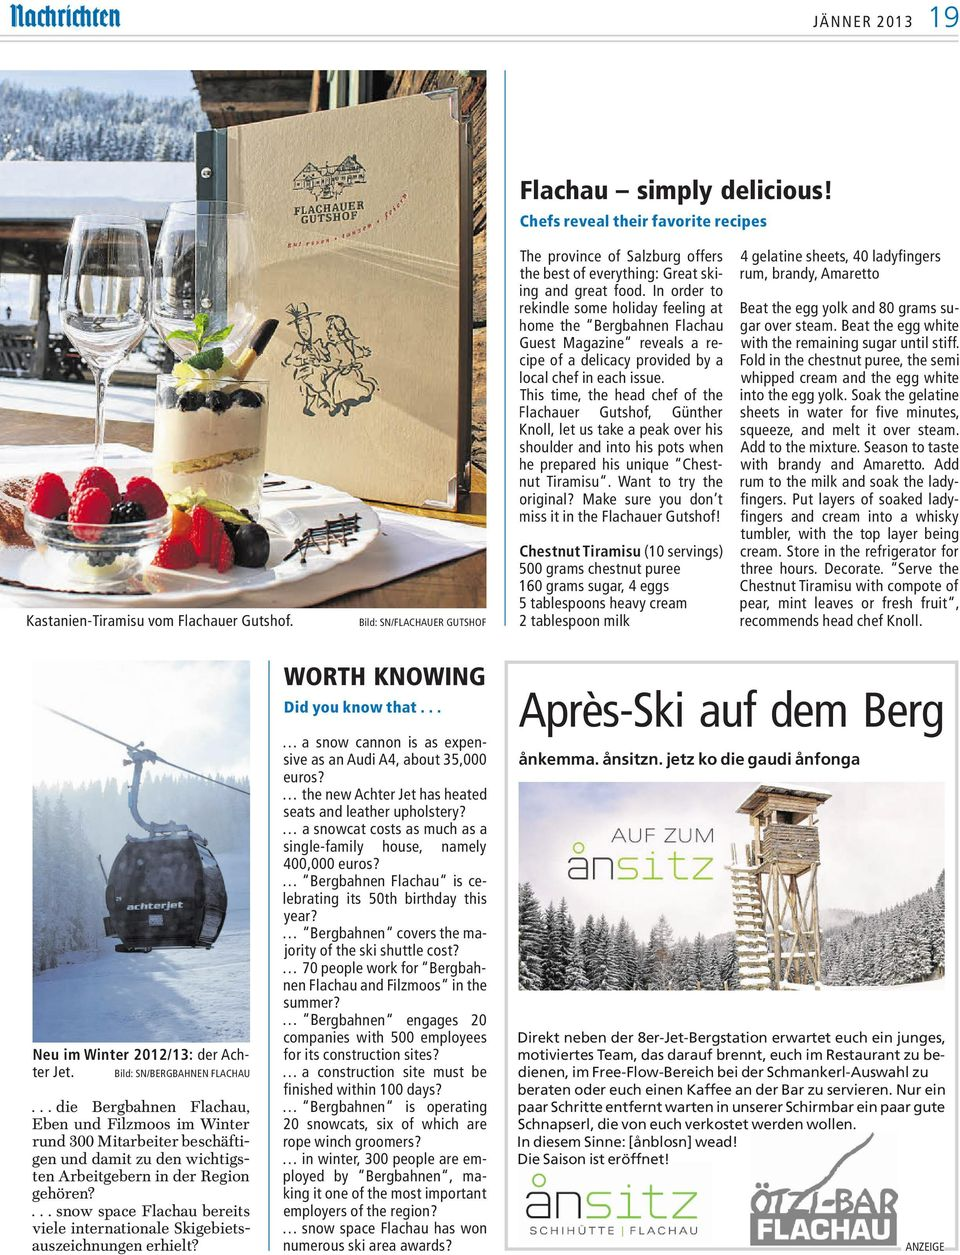 In order to rekindle some holiday feeling at home the Bergbahnen Flachau Guest Magazine reveals a recipe of a delicacy provided by a local chef in each issue.